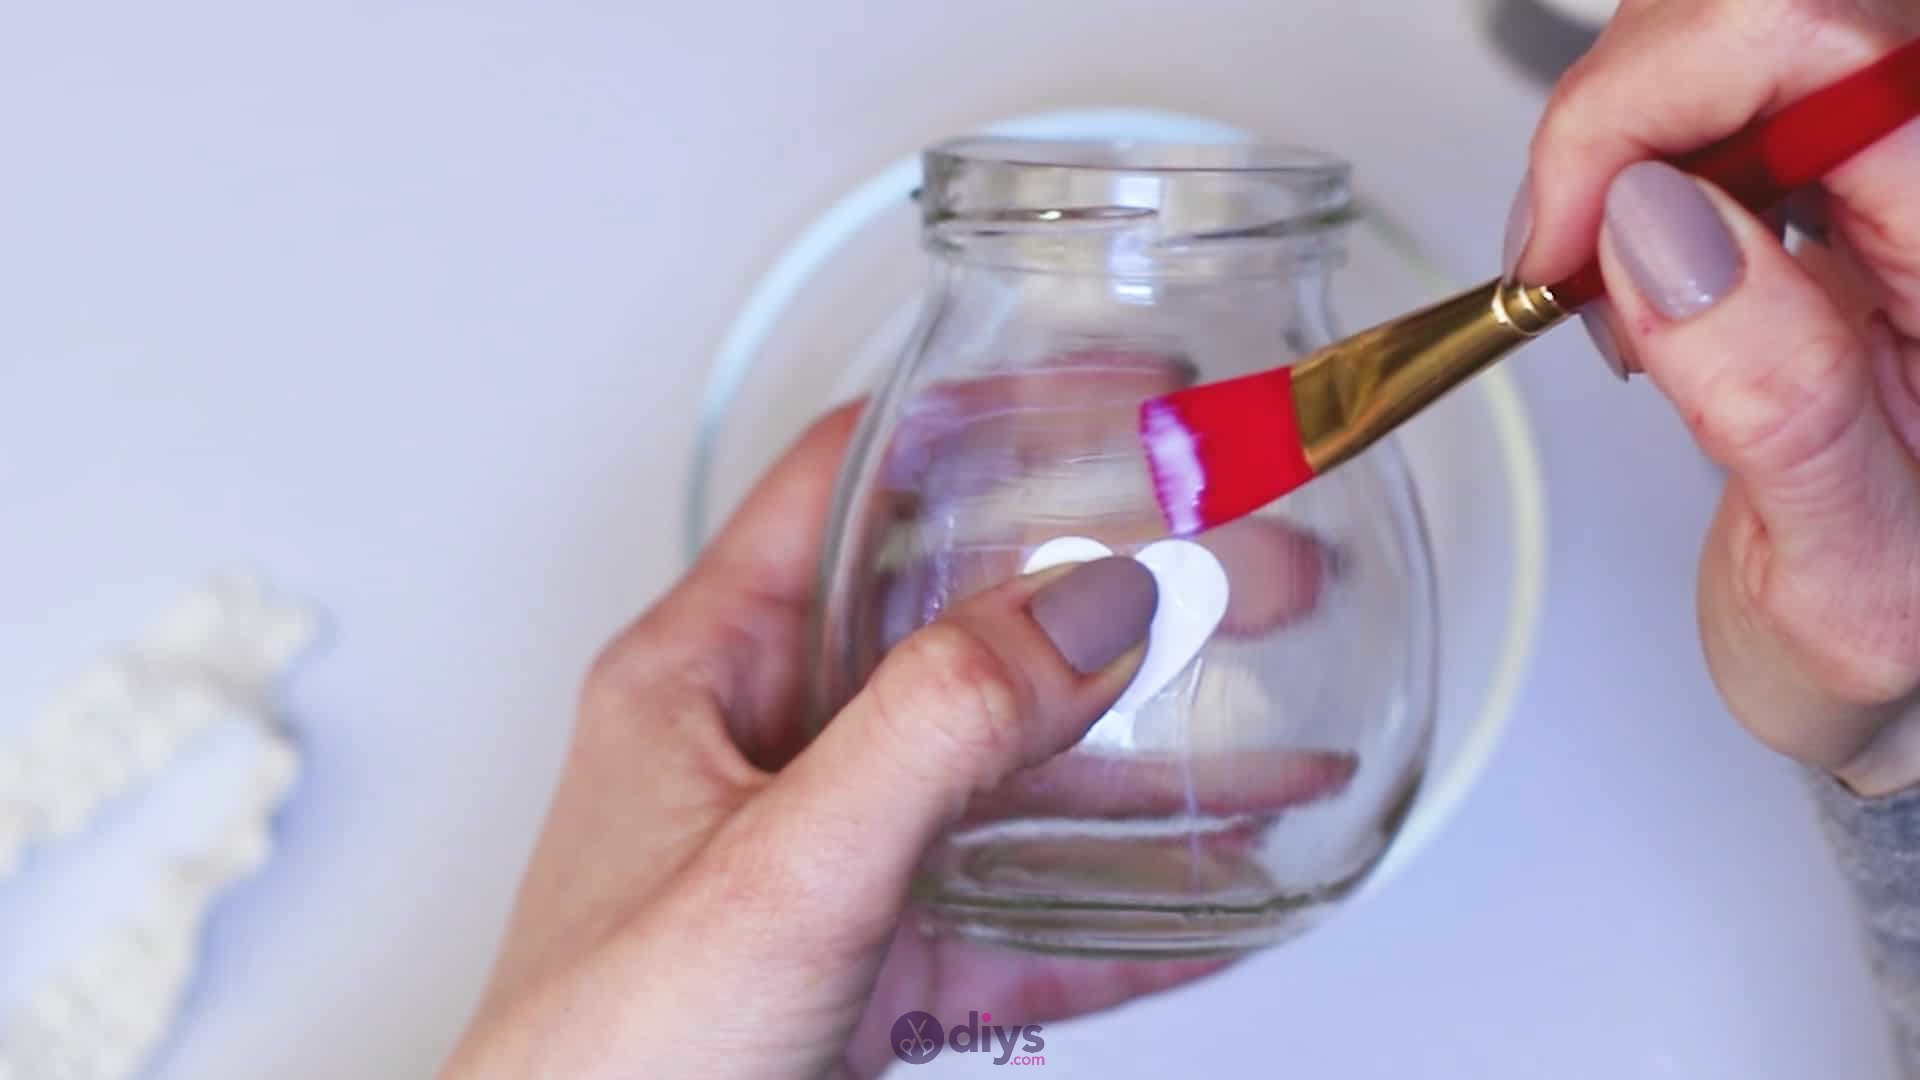 Diy flower glitter vase from glass jars step 4b